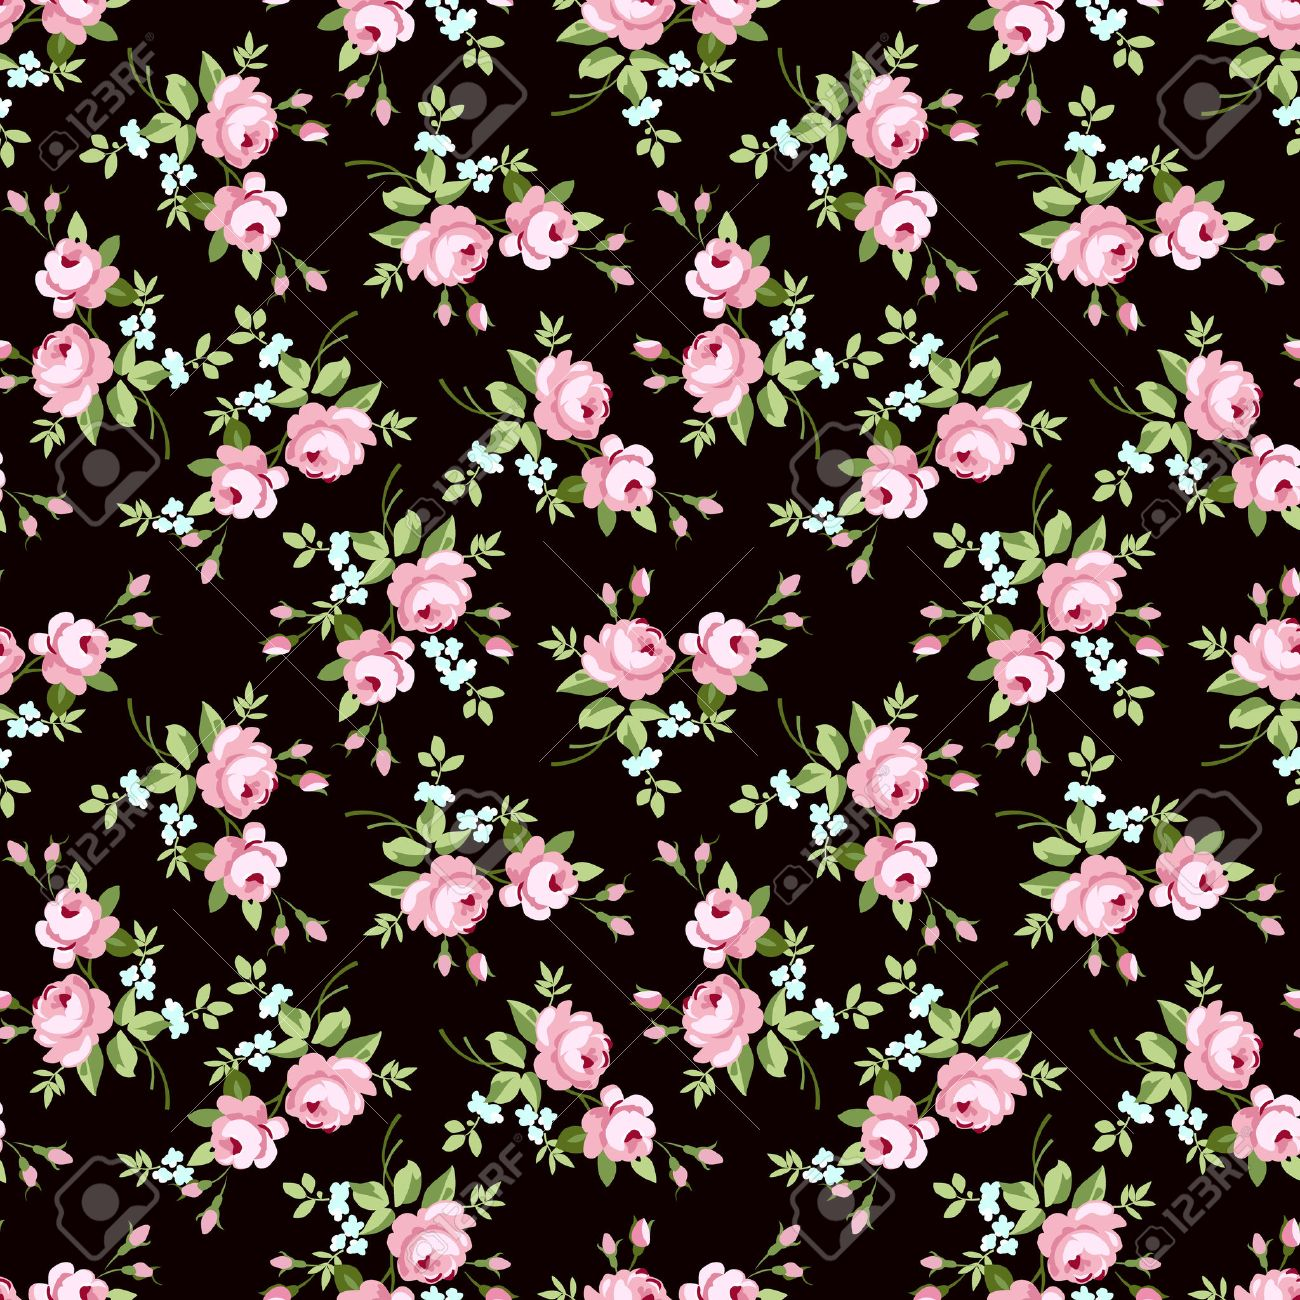 Seamless Floral Pattern With Little Pink Roses On Black Background